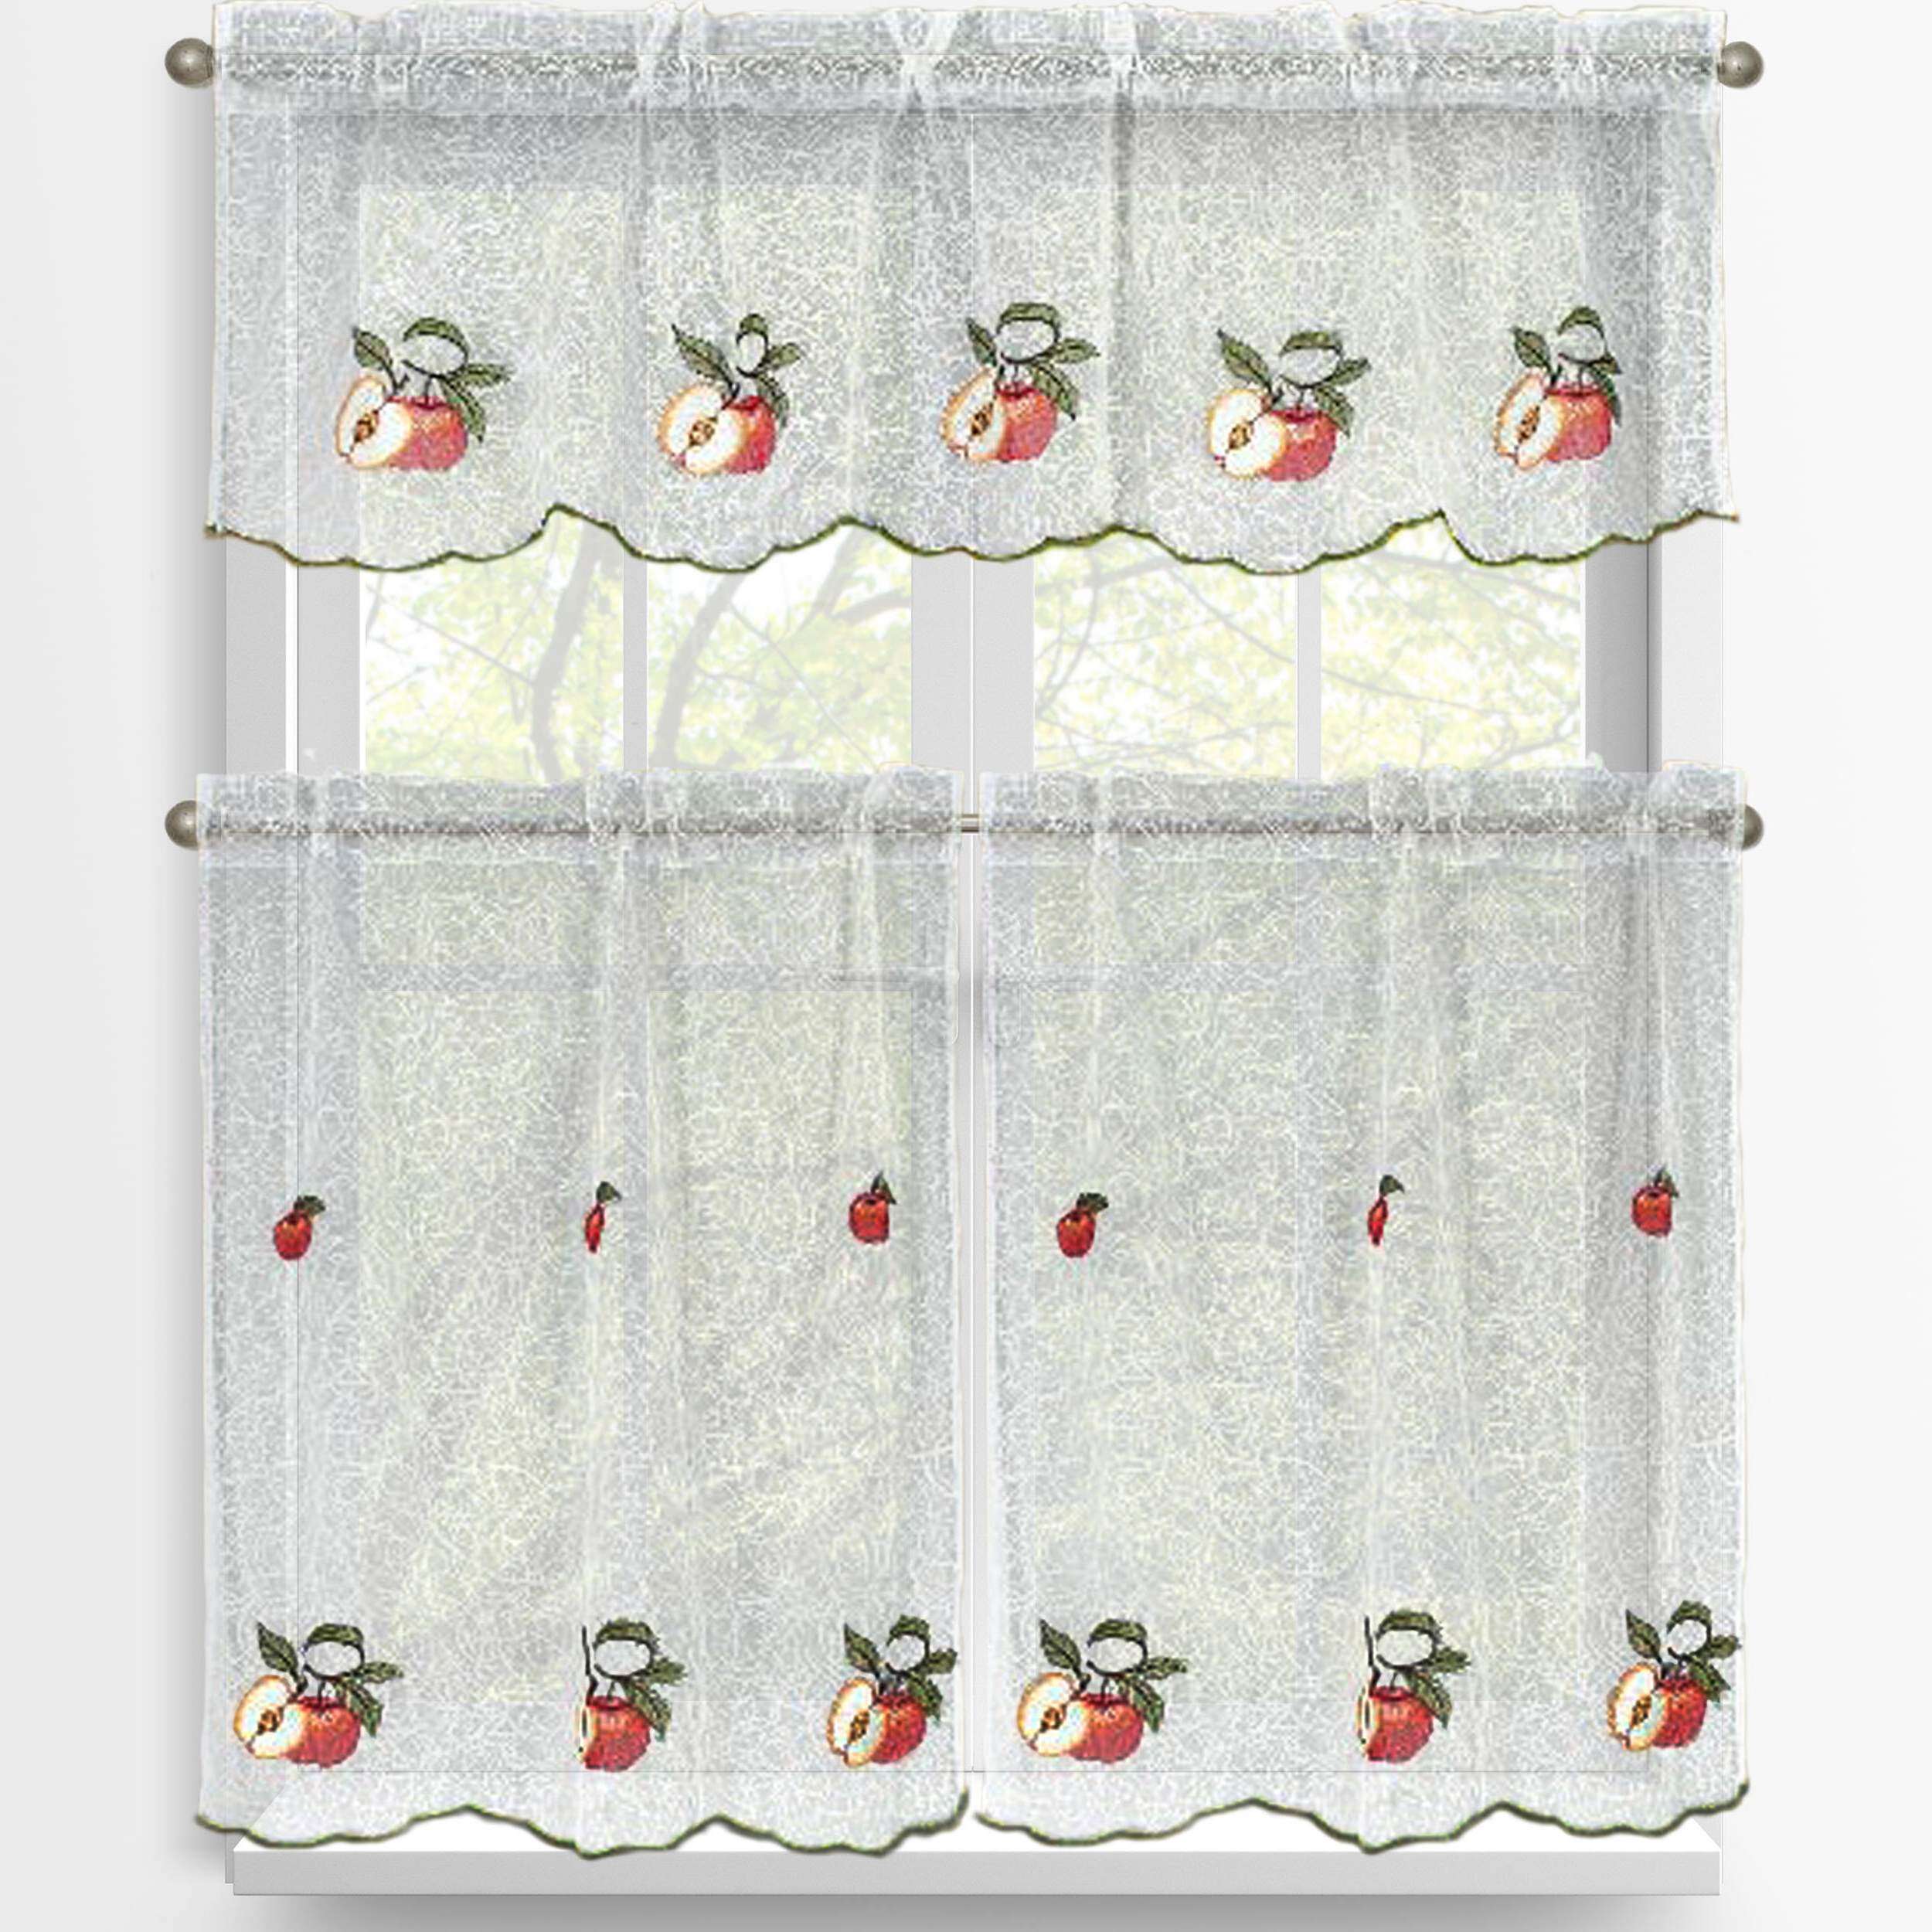 Red Apples 3 Piece Embroidered Kitchen Tier And Valance Set Within Most Popular Delicious Apples Kitchen Curtain Tier And Valance Sets (View 18 of 20)